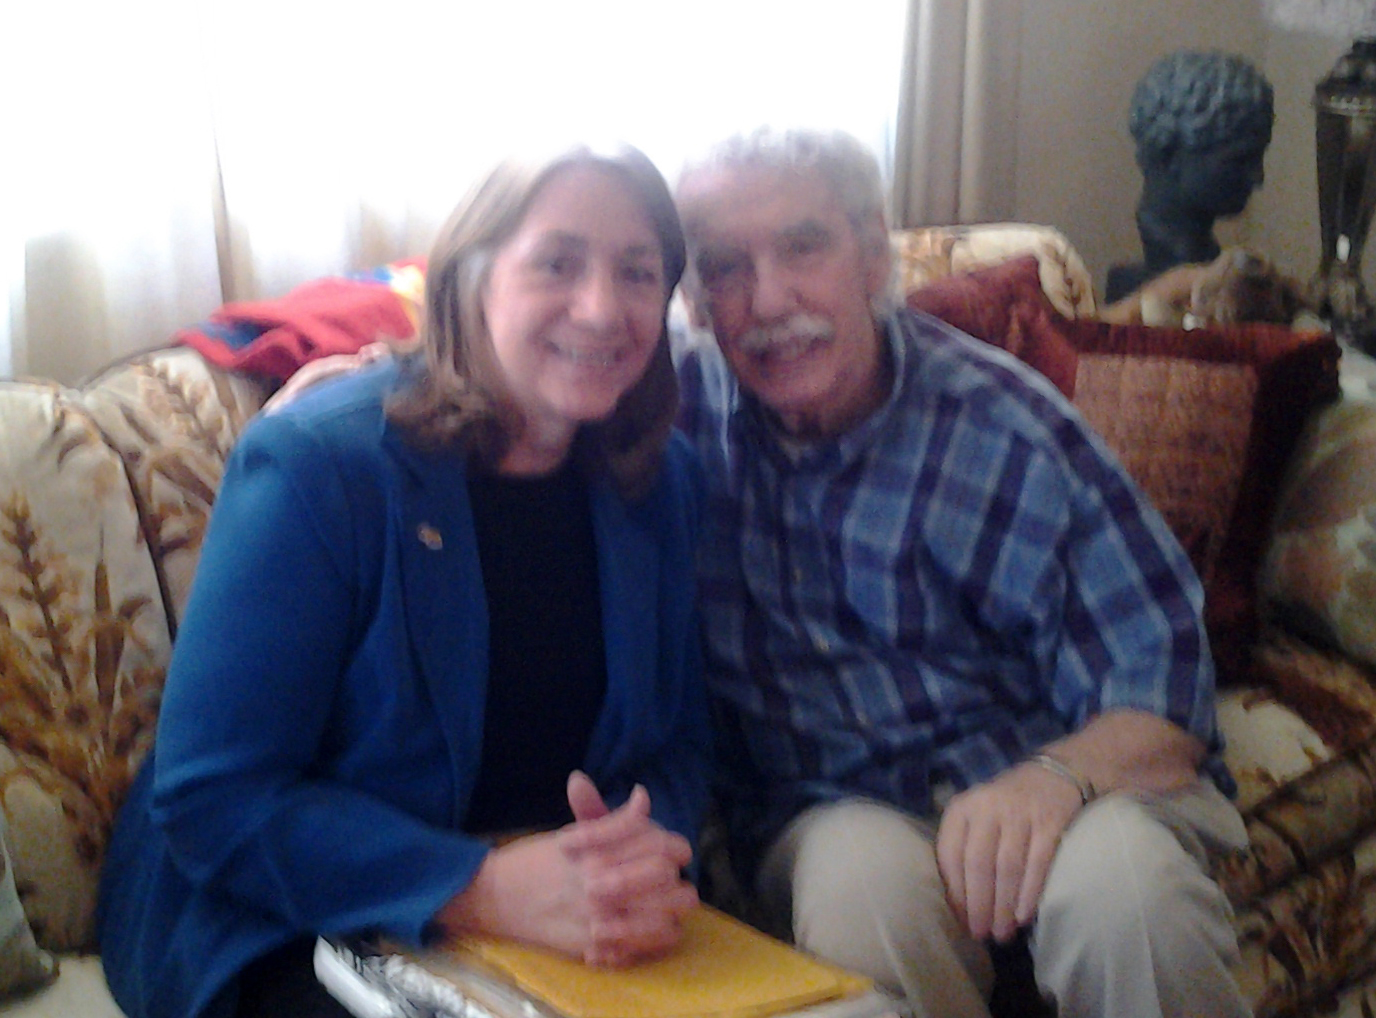 Dawne Dewey and Dale Huffman, at his home, March 2014.